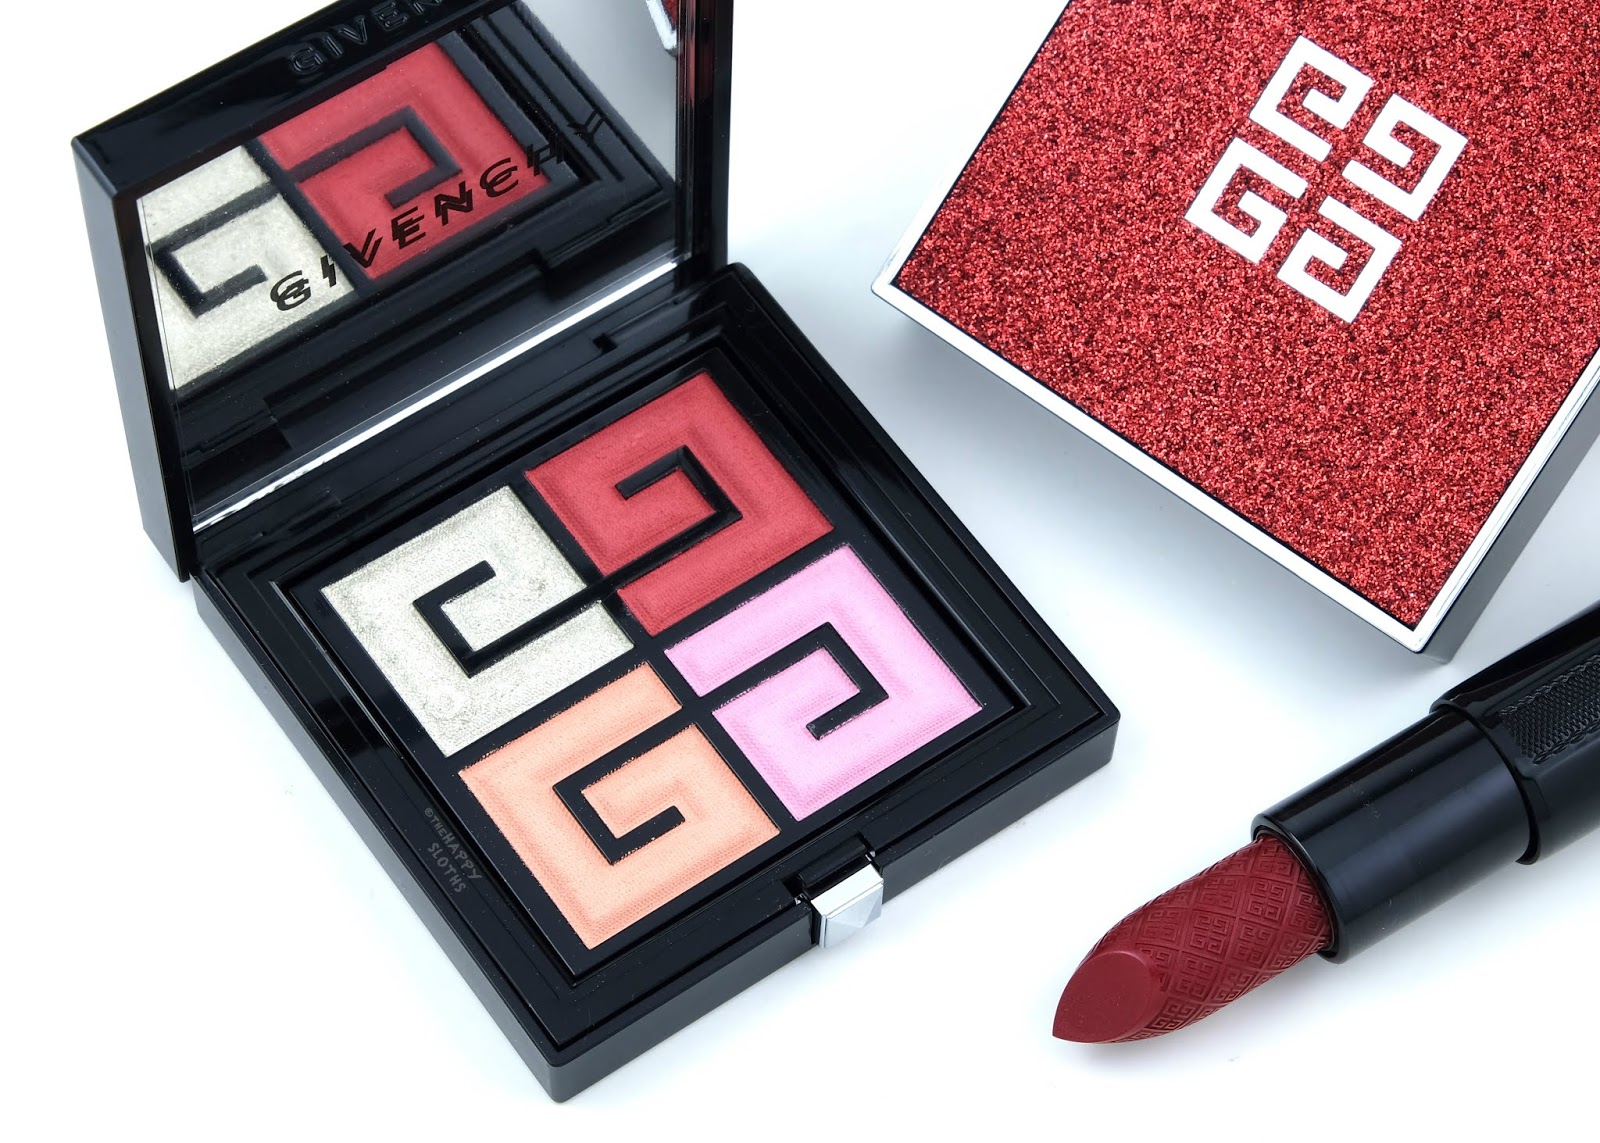 Givenchy Holiday 2019 Red Line Collection | Red Lights 4 Color Face & Eyes Palette: Review and Swatches